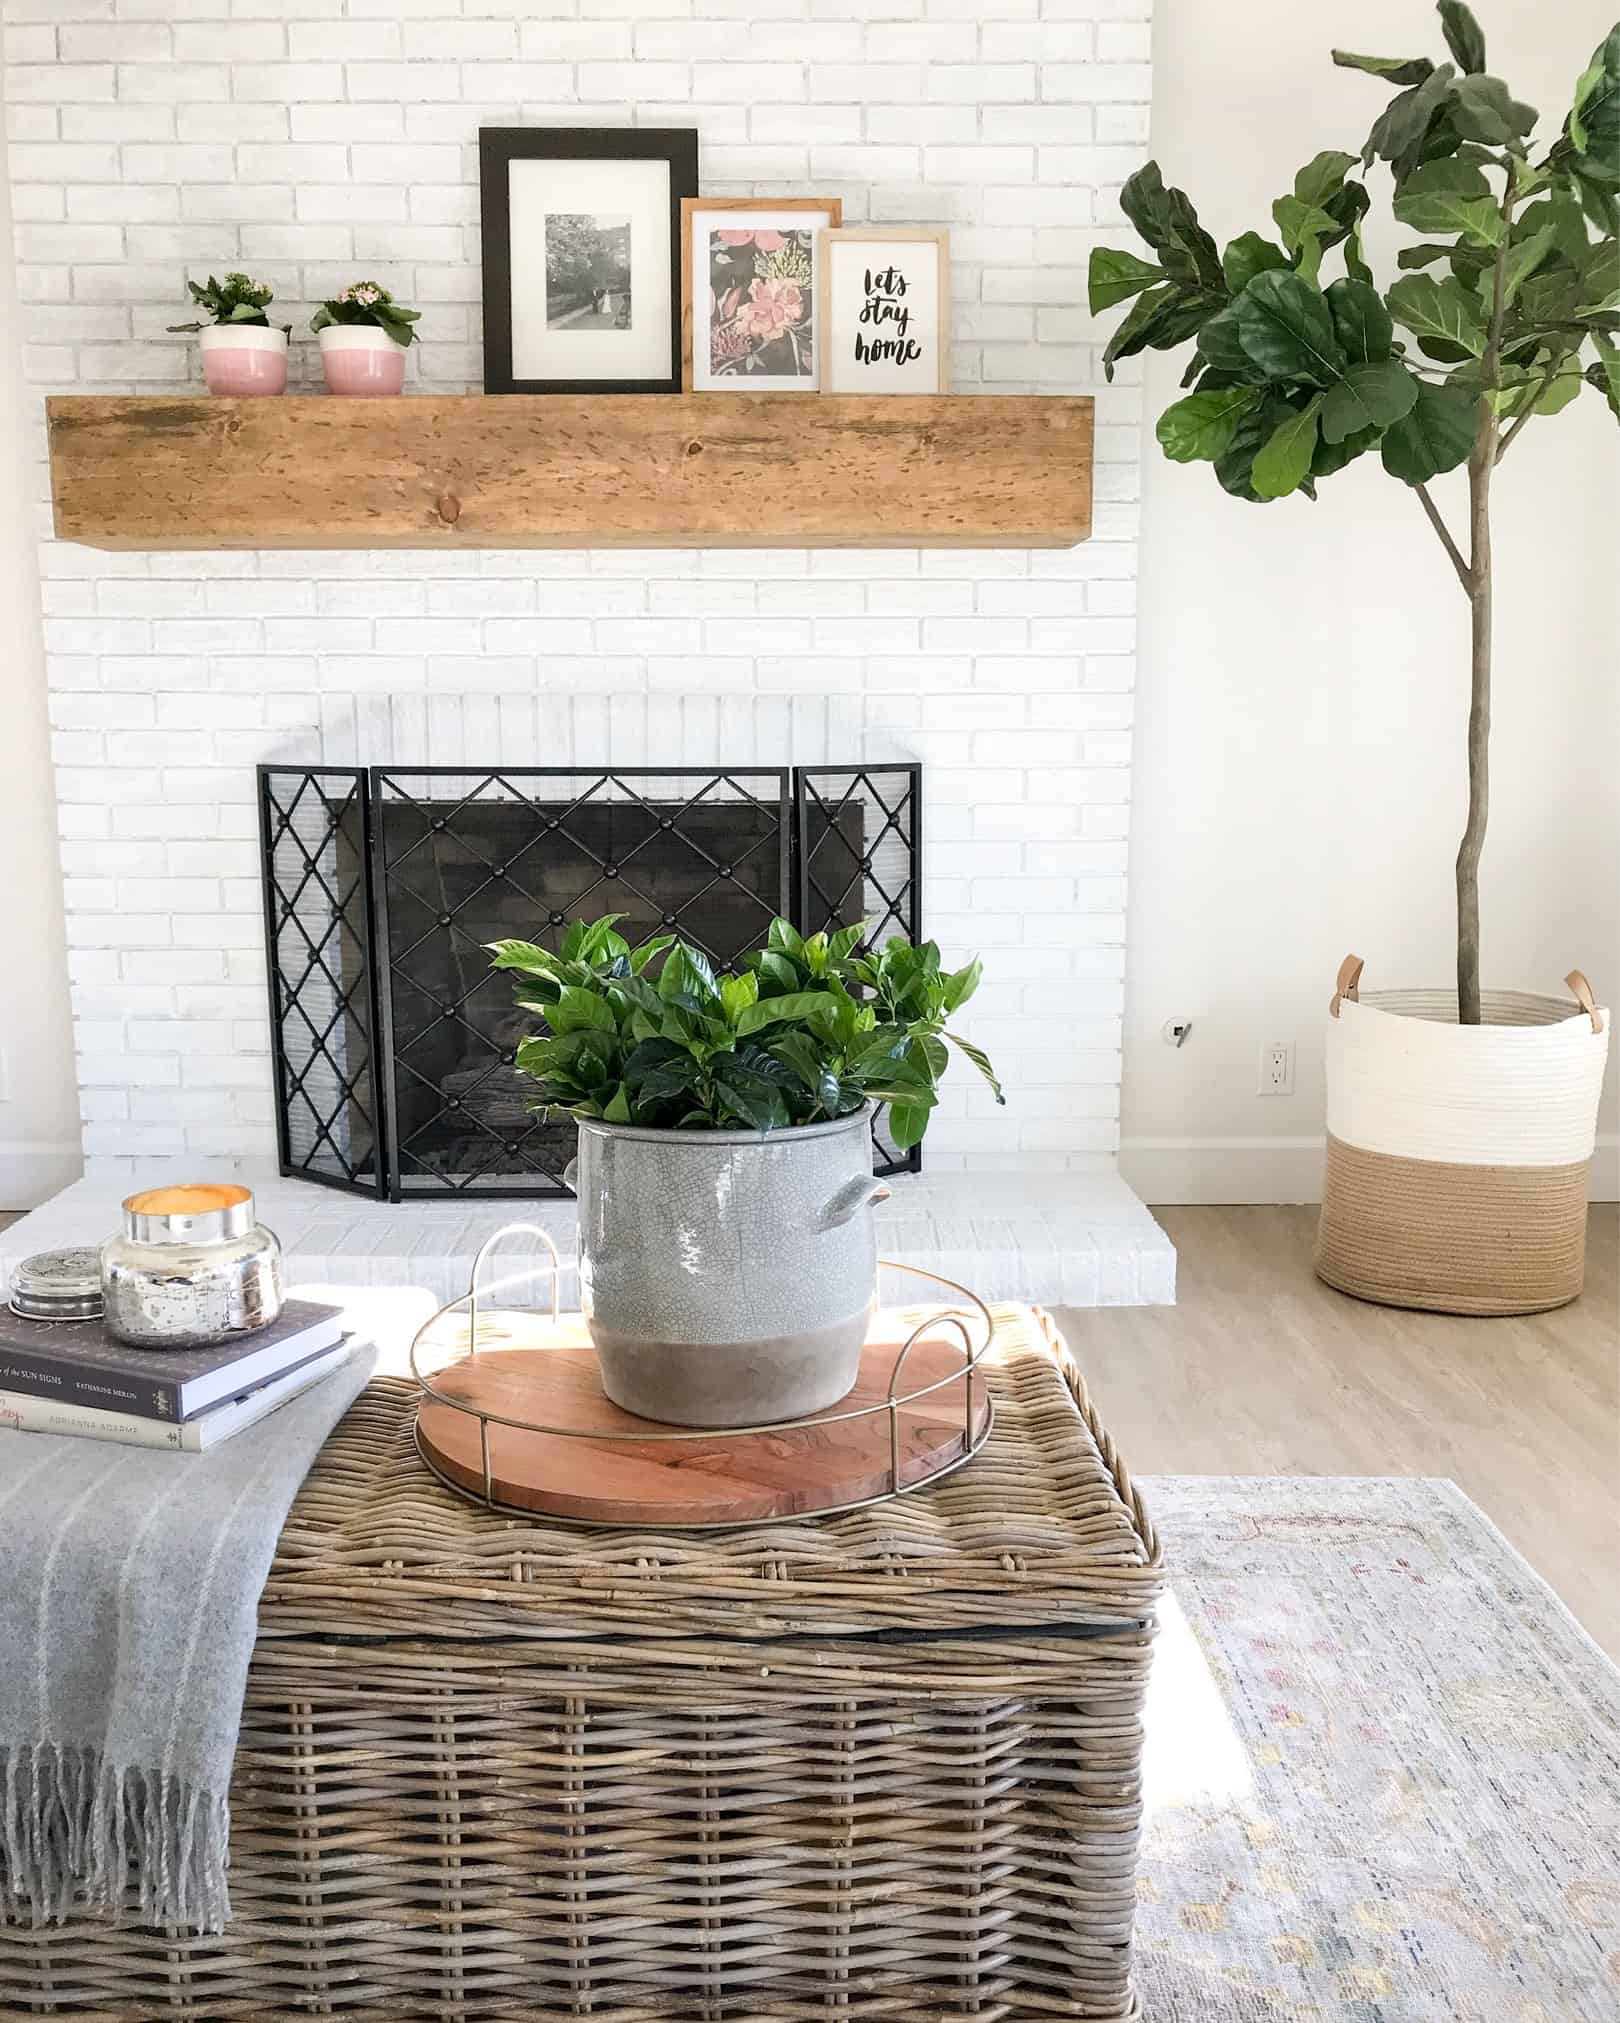 Diy rustic floating mantel